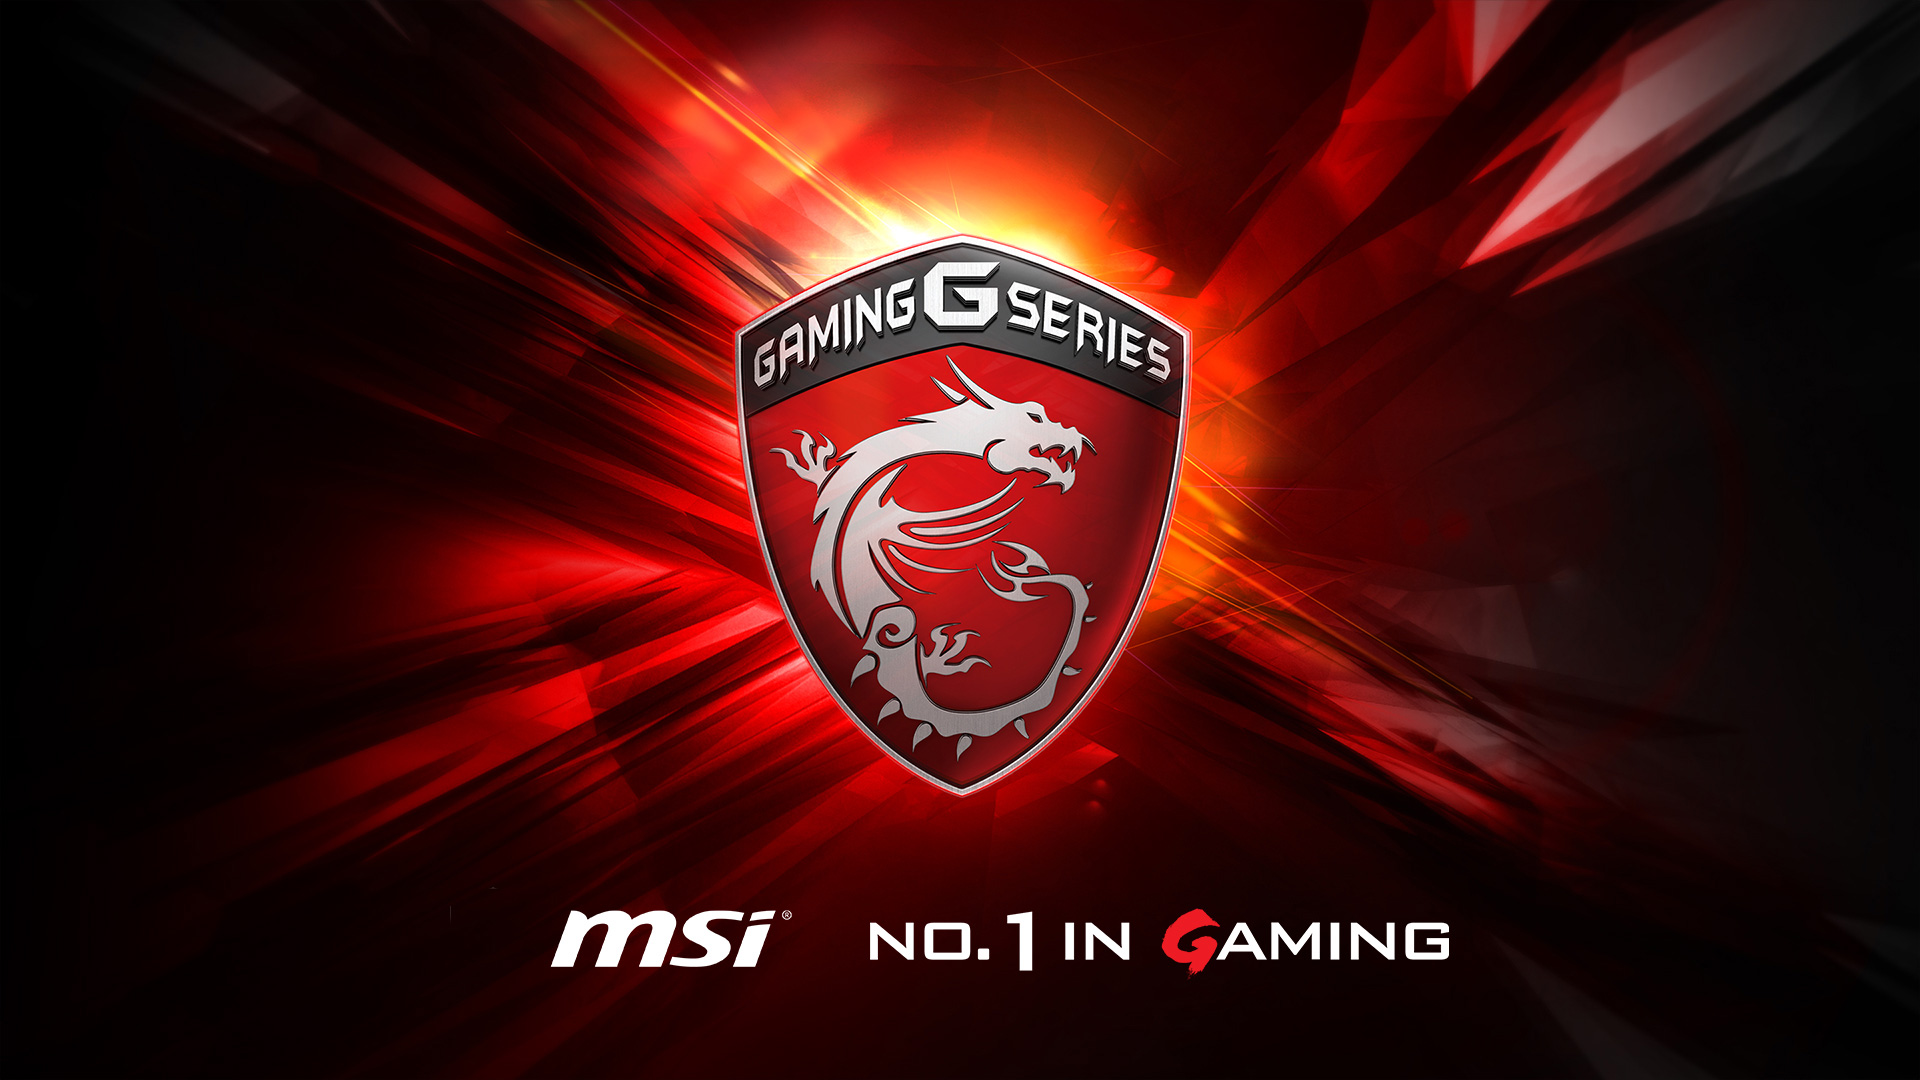 MSI Gaming App Updated To Support GeForce GTX 1050 Ti Series